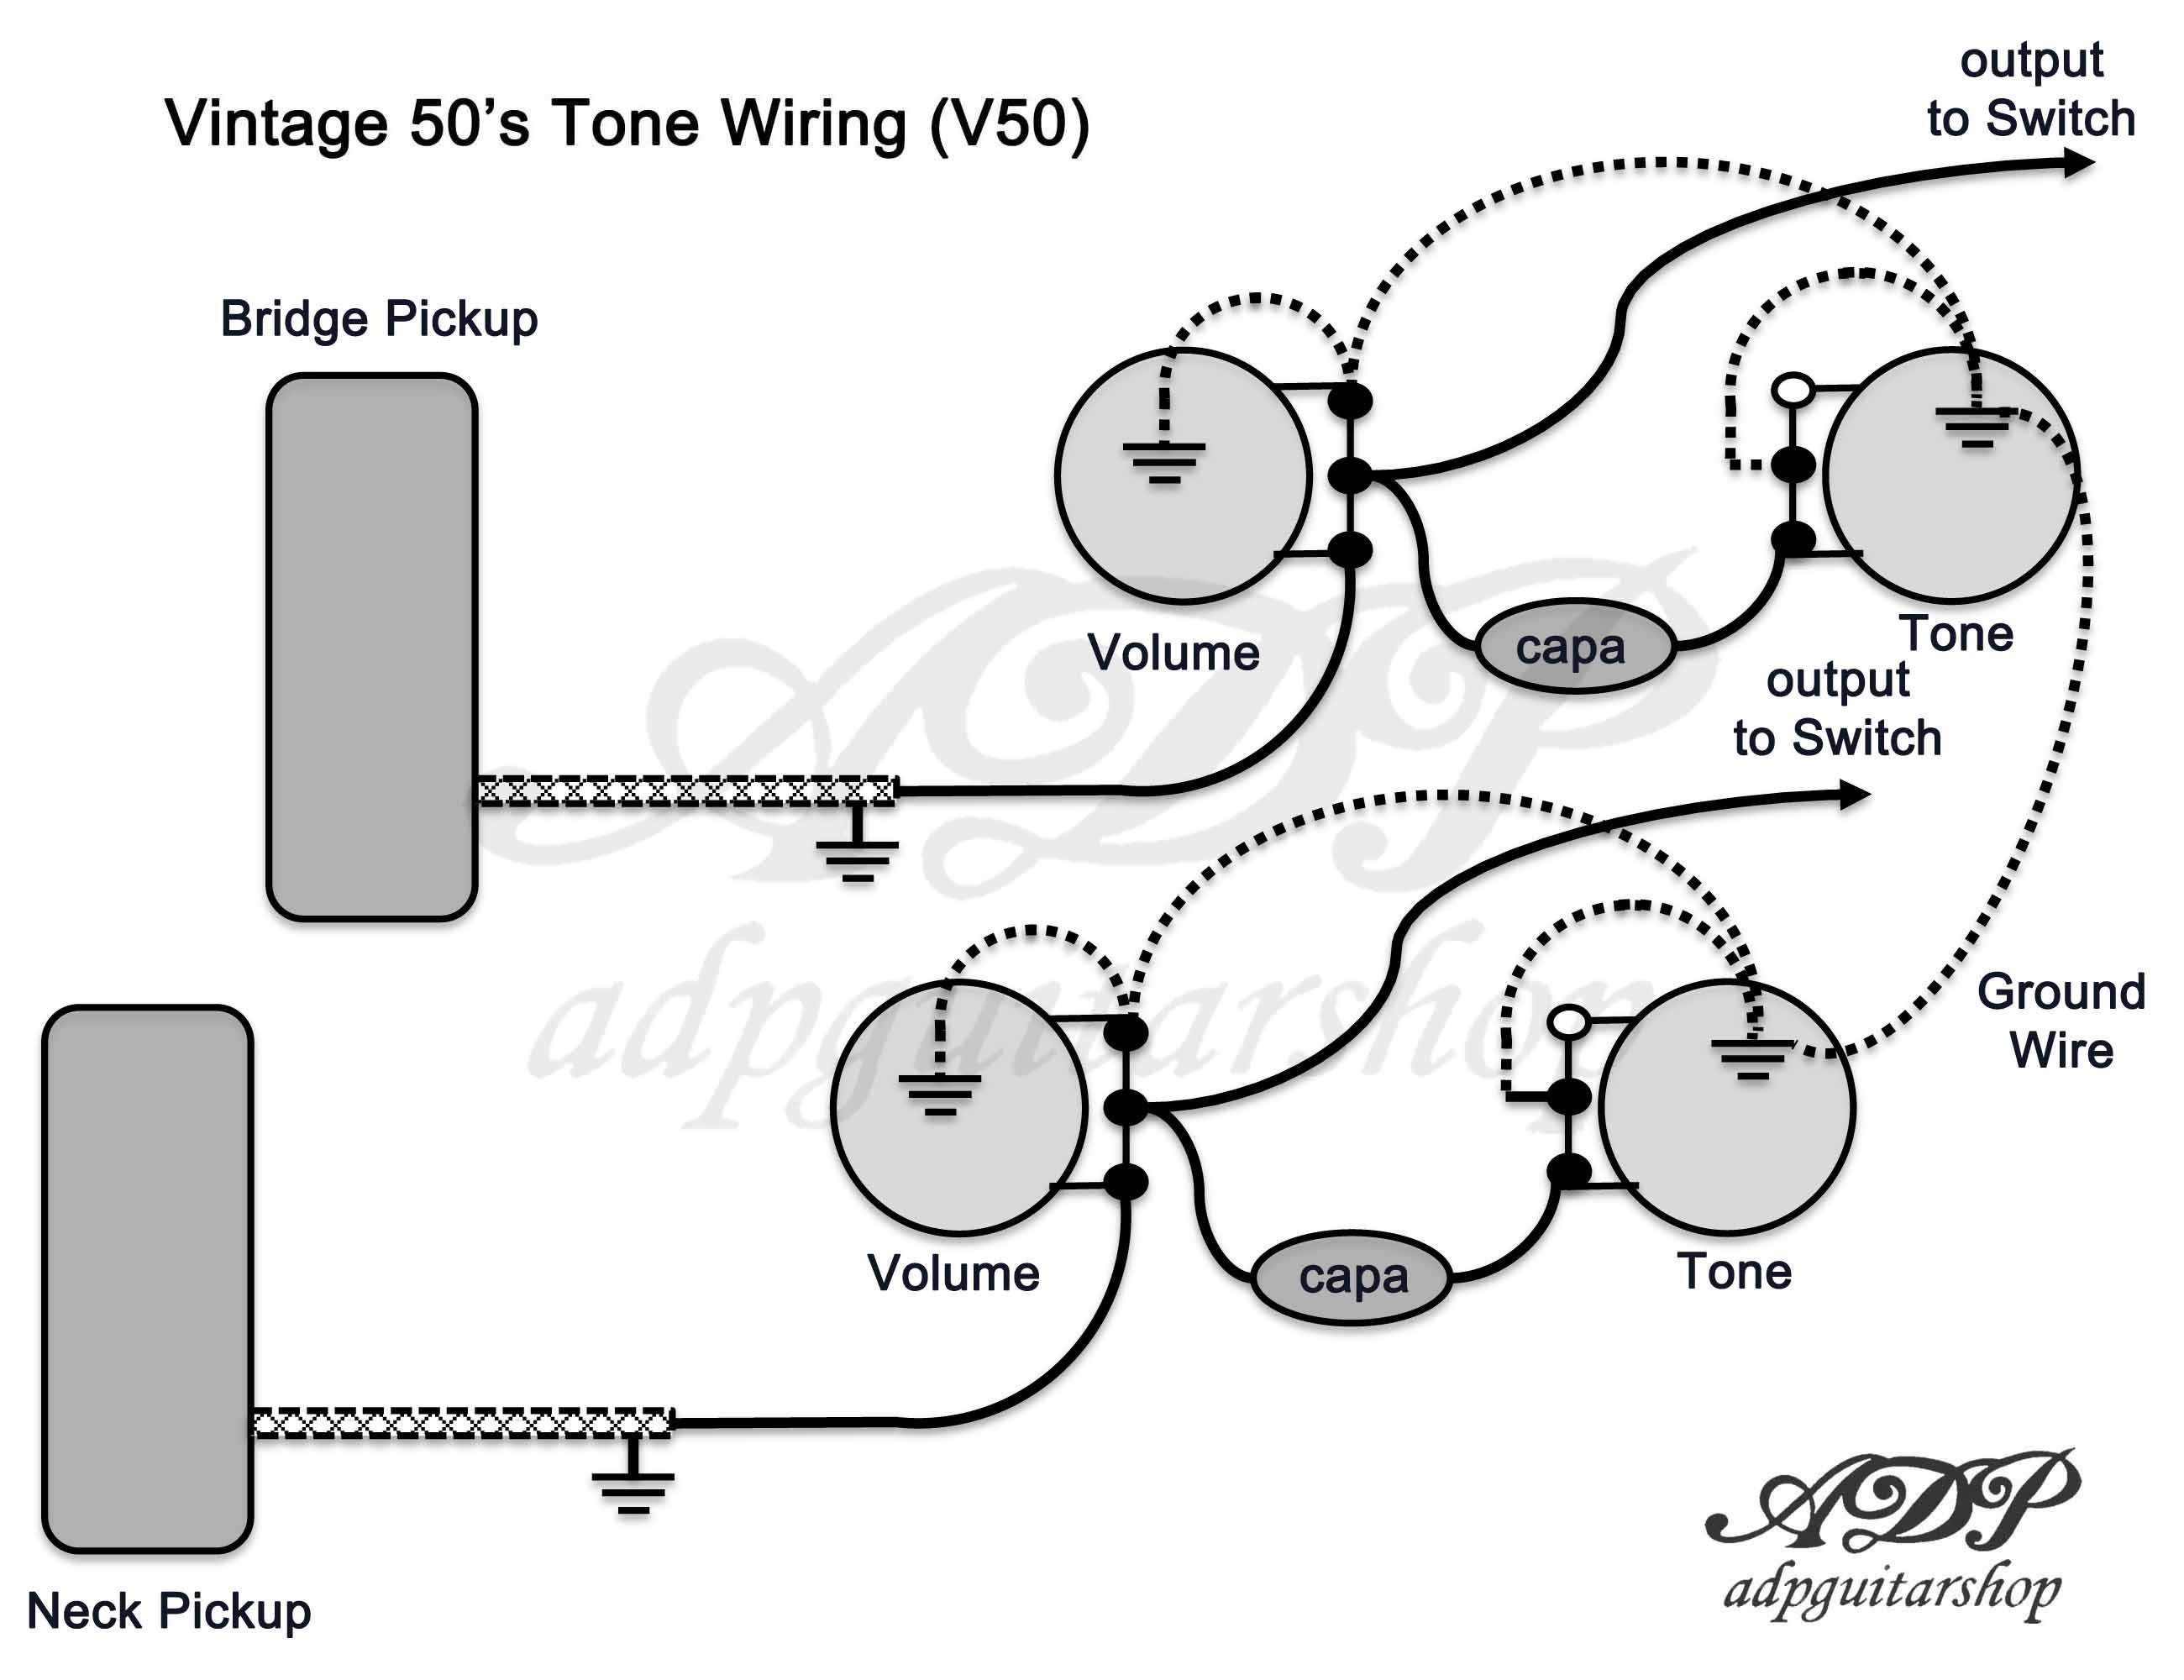 les paul wiring diagrams wiring circuit \u2022 jimmy page wiring diagram les paul standard wiring diagram wiring diagrams schematics rh noppon co les paul wiring diagram seymour